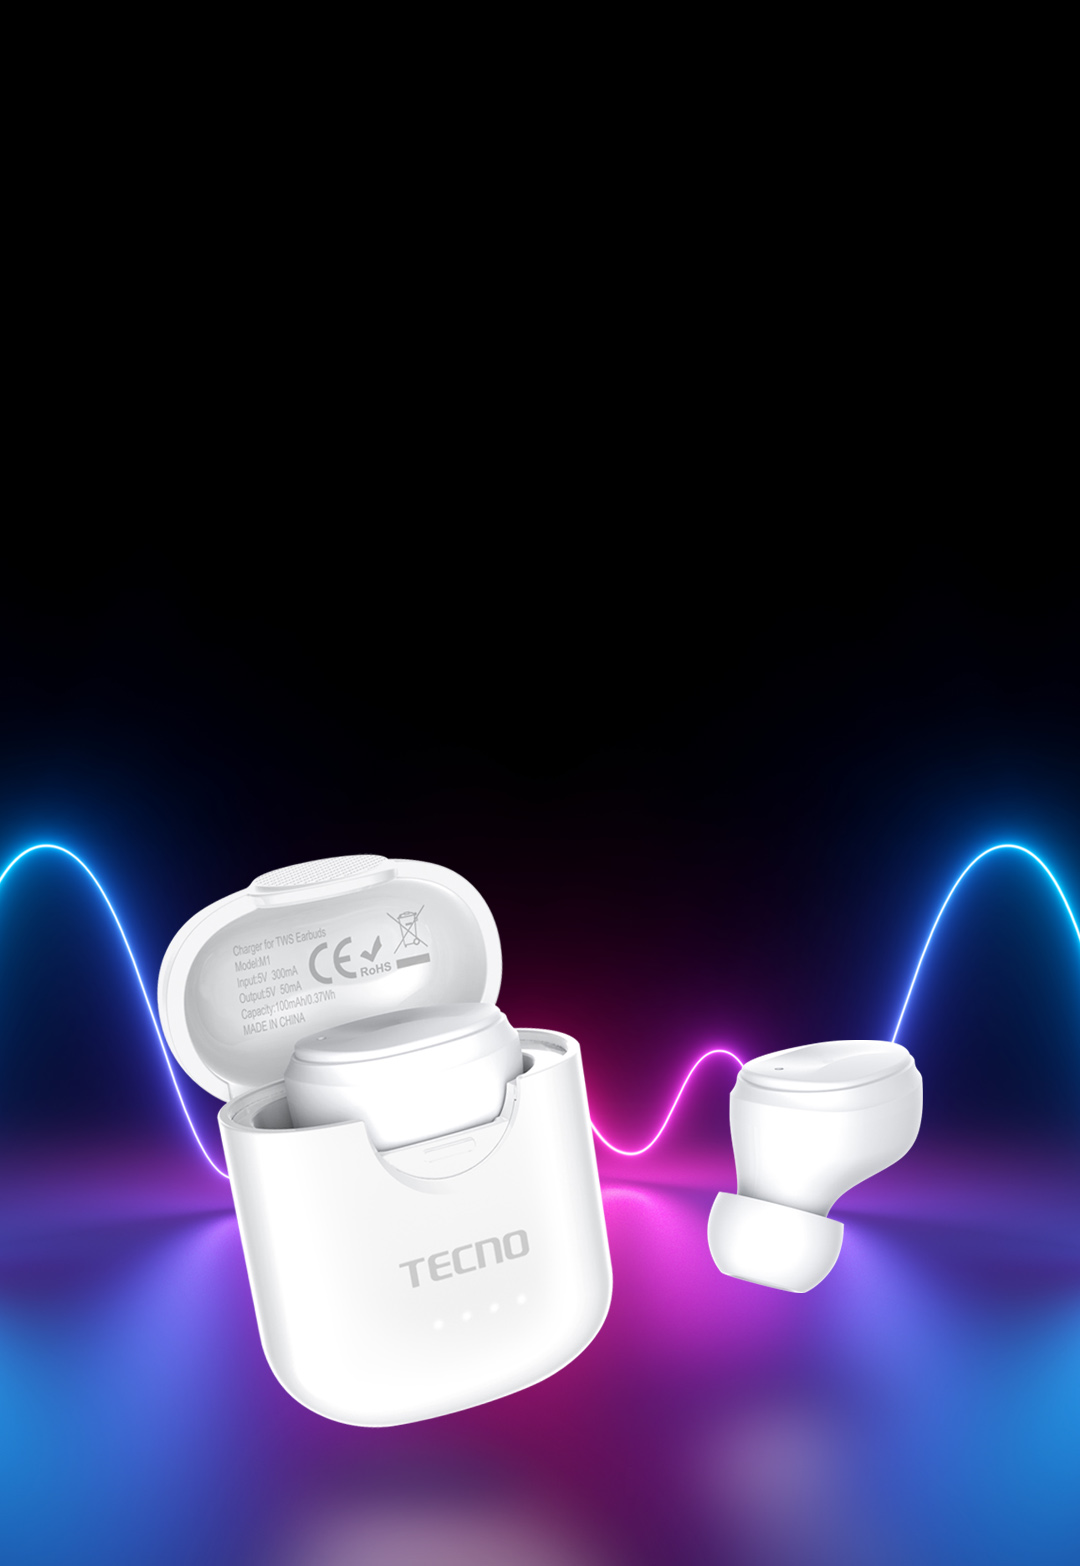 TECNO Bluetooth Earbuds